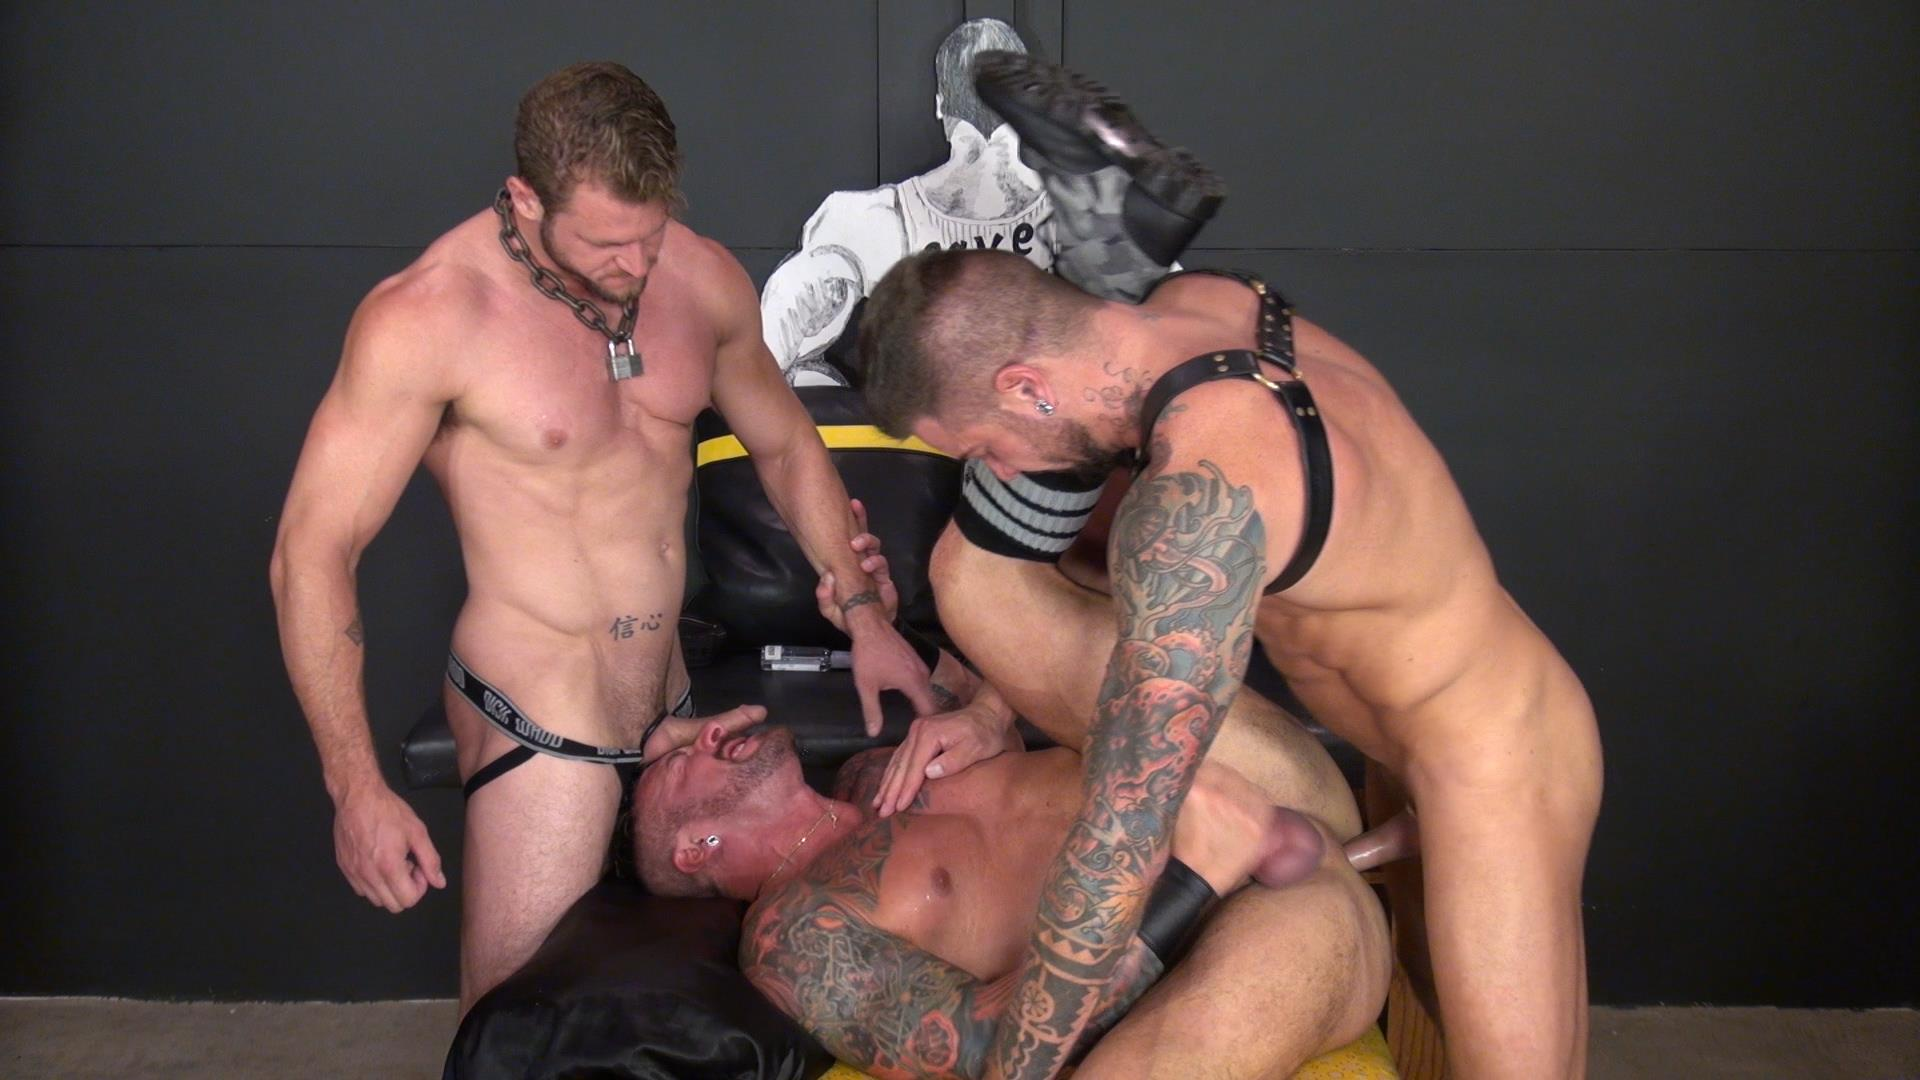 Raw and Rough Boy Fillmore Dolf Dietrich Damon Andros Hugh Hunter Ace Era Free Gay Porn 07 Bareback Fuck And Piss Party At An Underground Sex Club